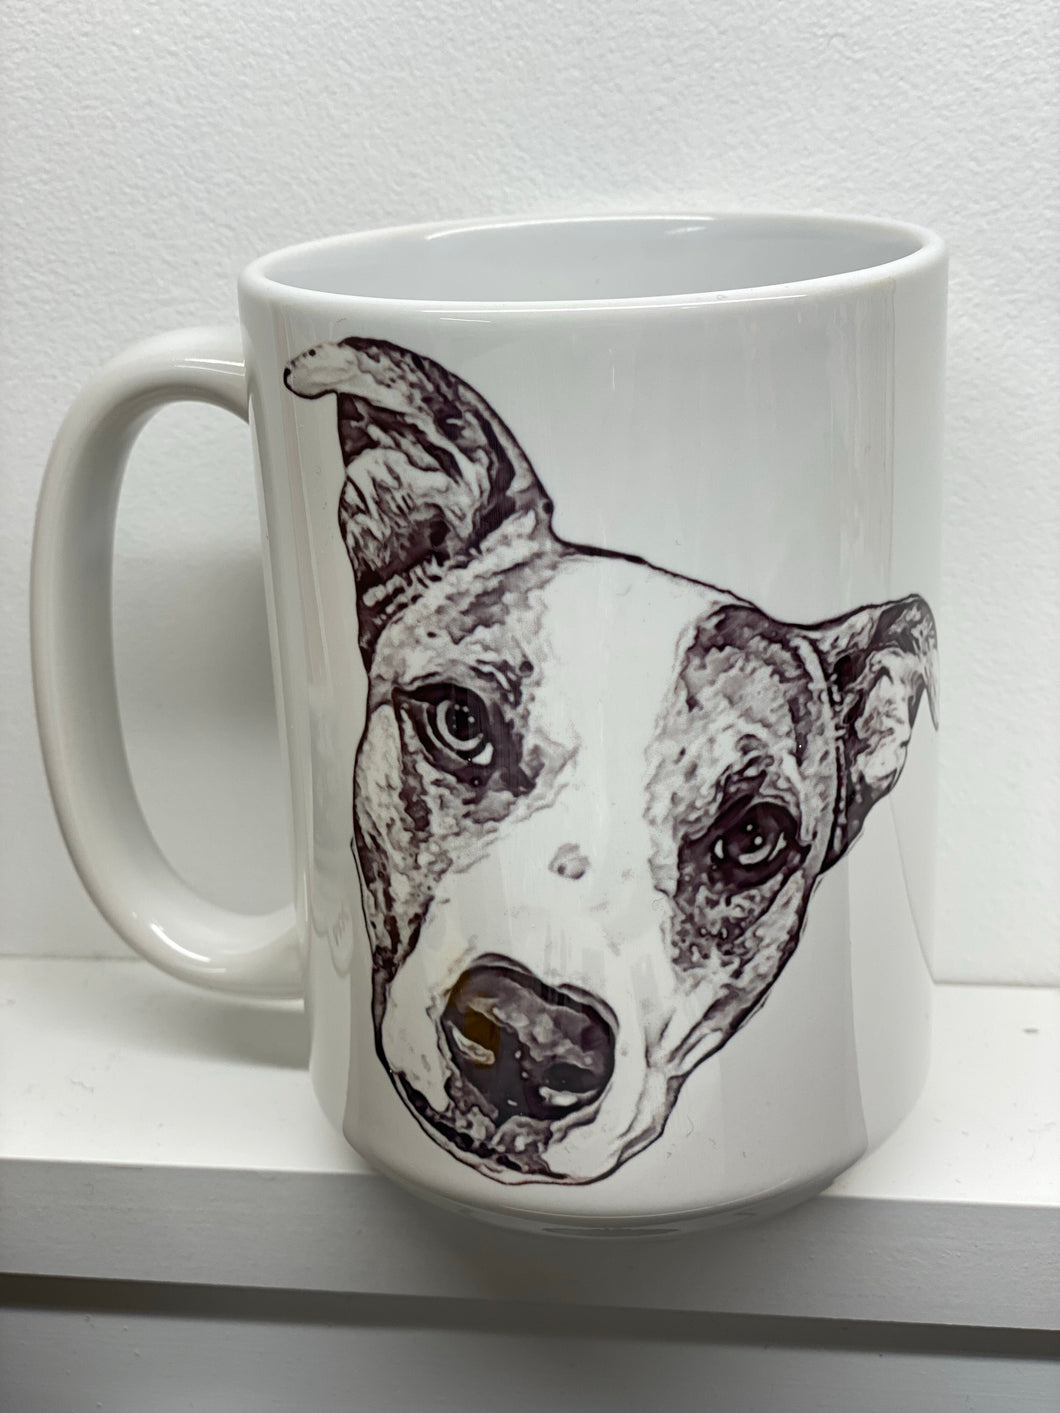 Put a sketch of your pets photo on mug!